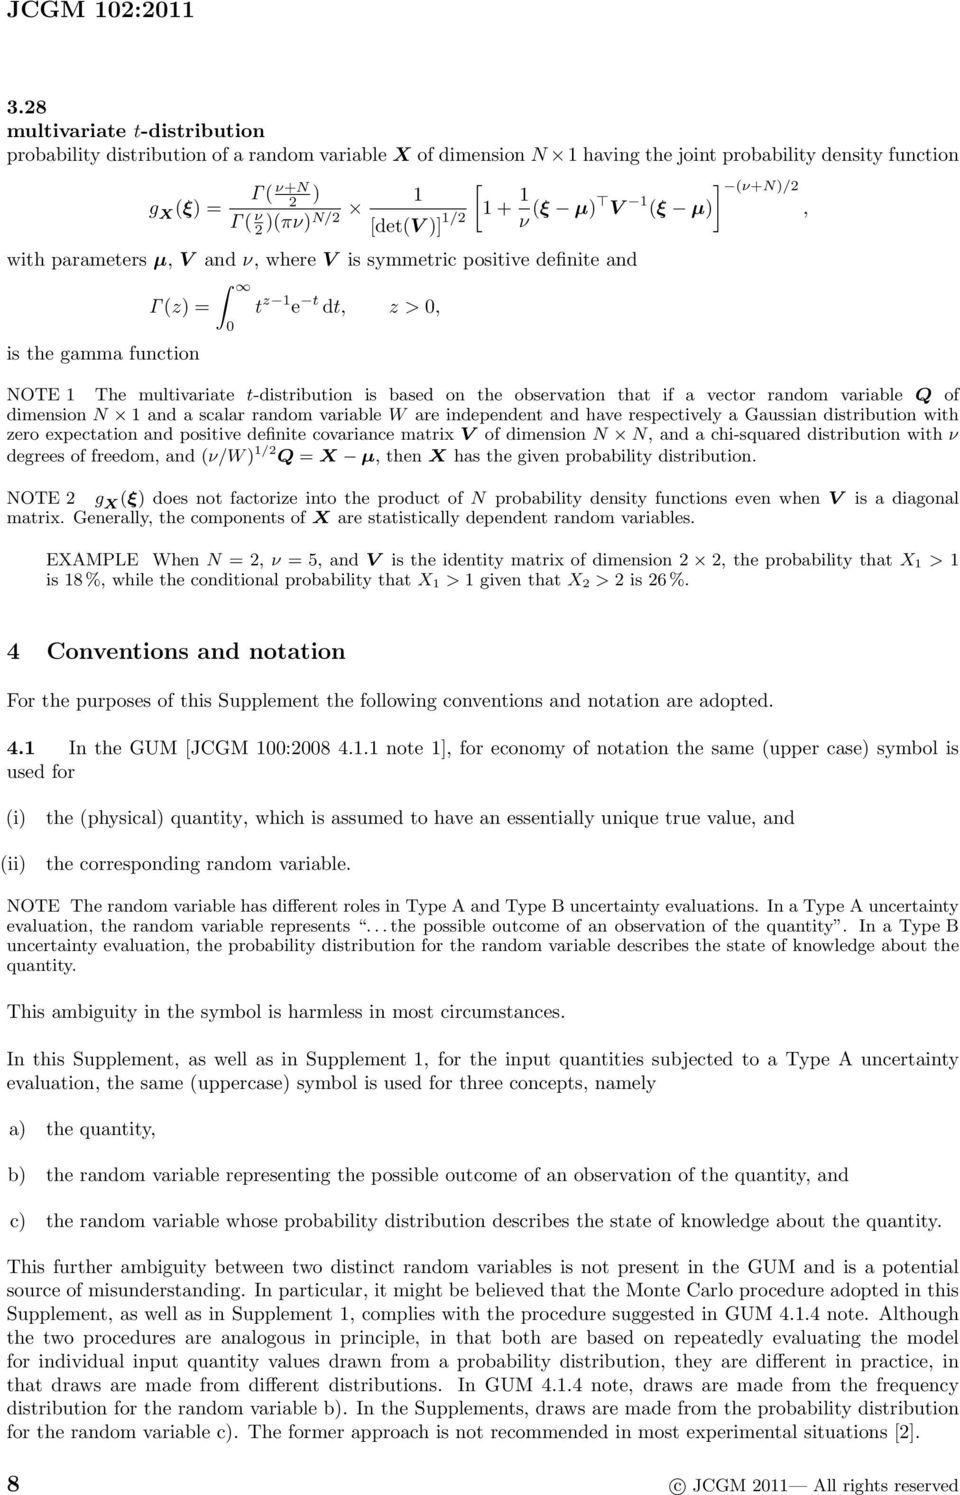 is based on the observation that if a vector random variable Q of dimension N 1 and a scalar random variable W are independent and have respectively a Gaussian distribution with zero expectation and